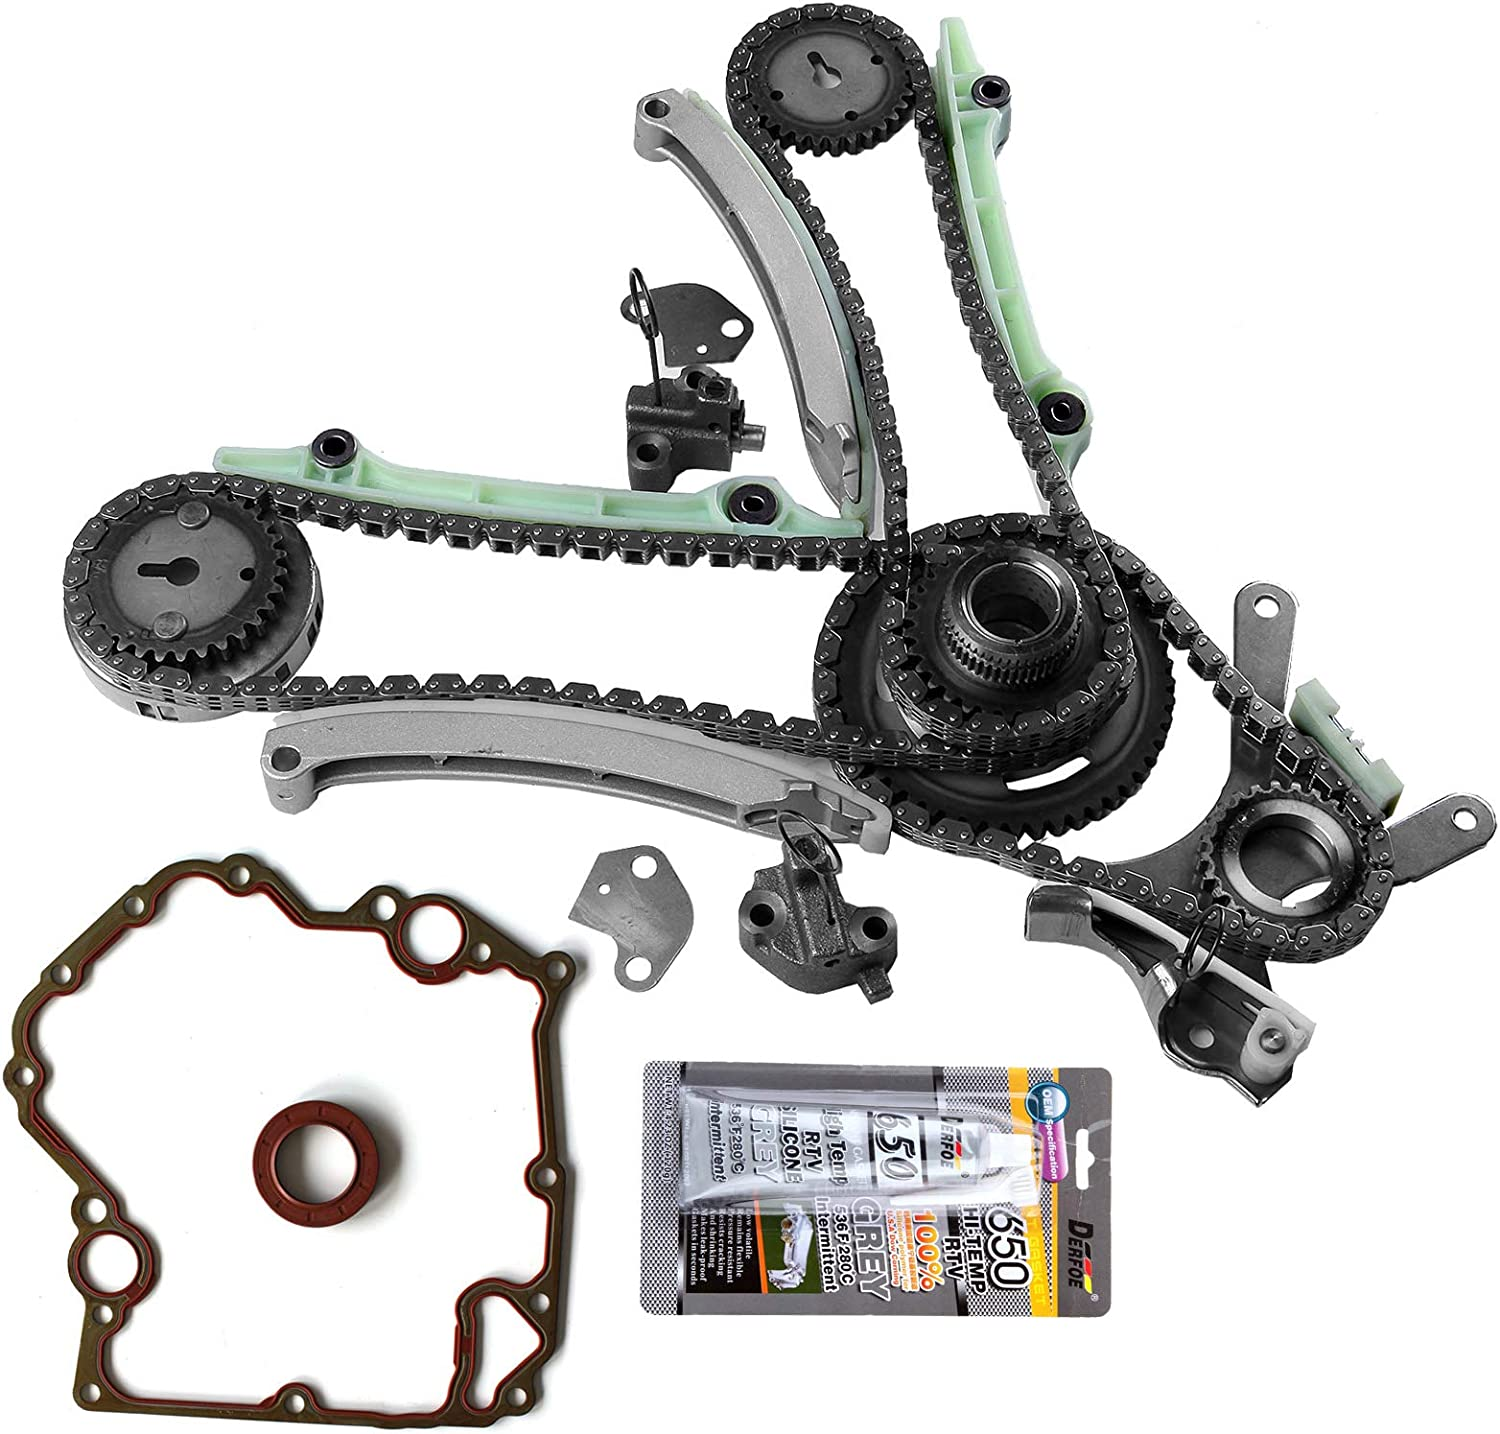 SCITOO Timing Chain Water Pump Cover Gasket Kit fits for 2002 2007 9-0393SD 90393SD 76112 TCS46000 TCS46022 for Dodge Dakota Durango Ram 1500 4.7L